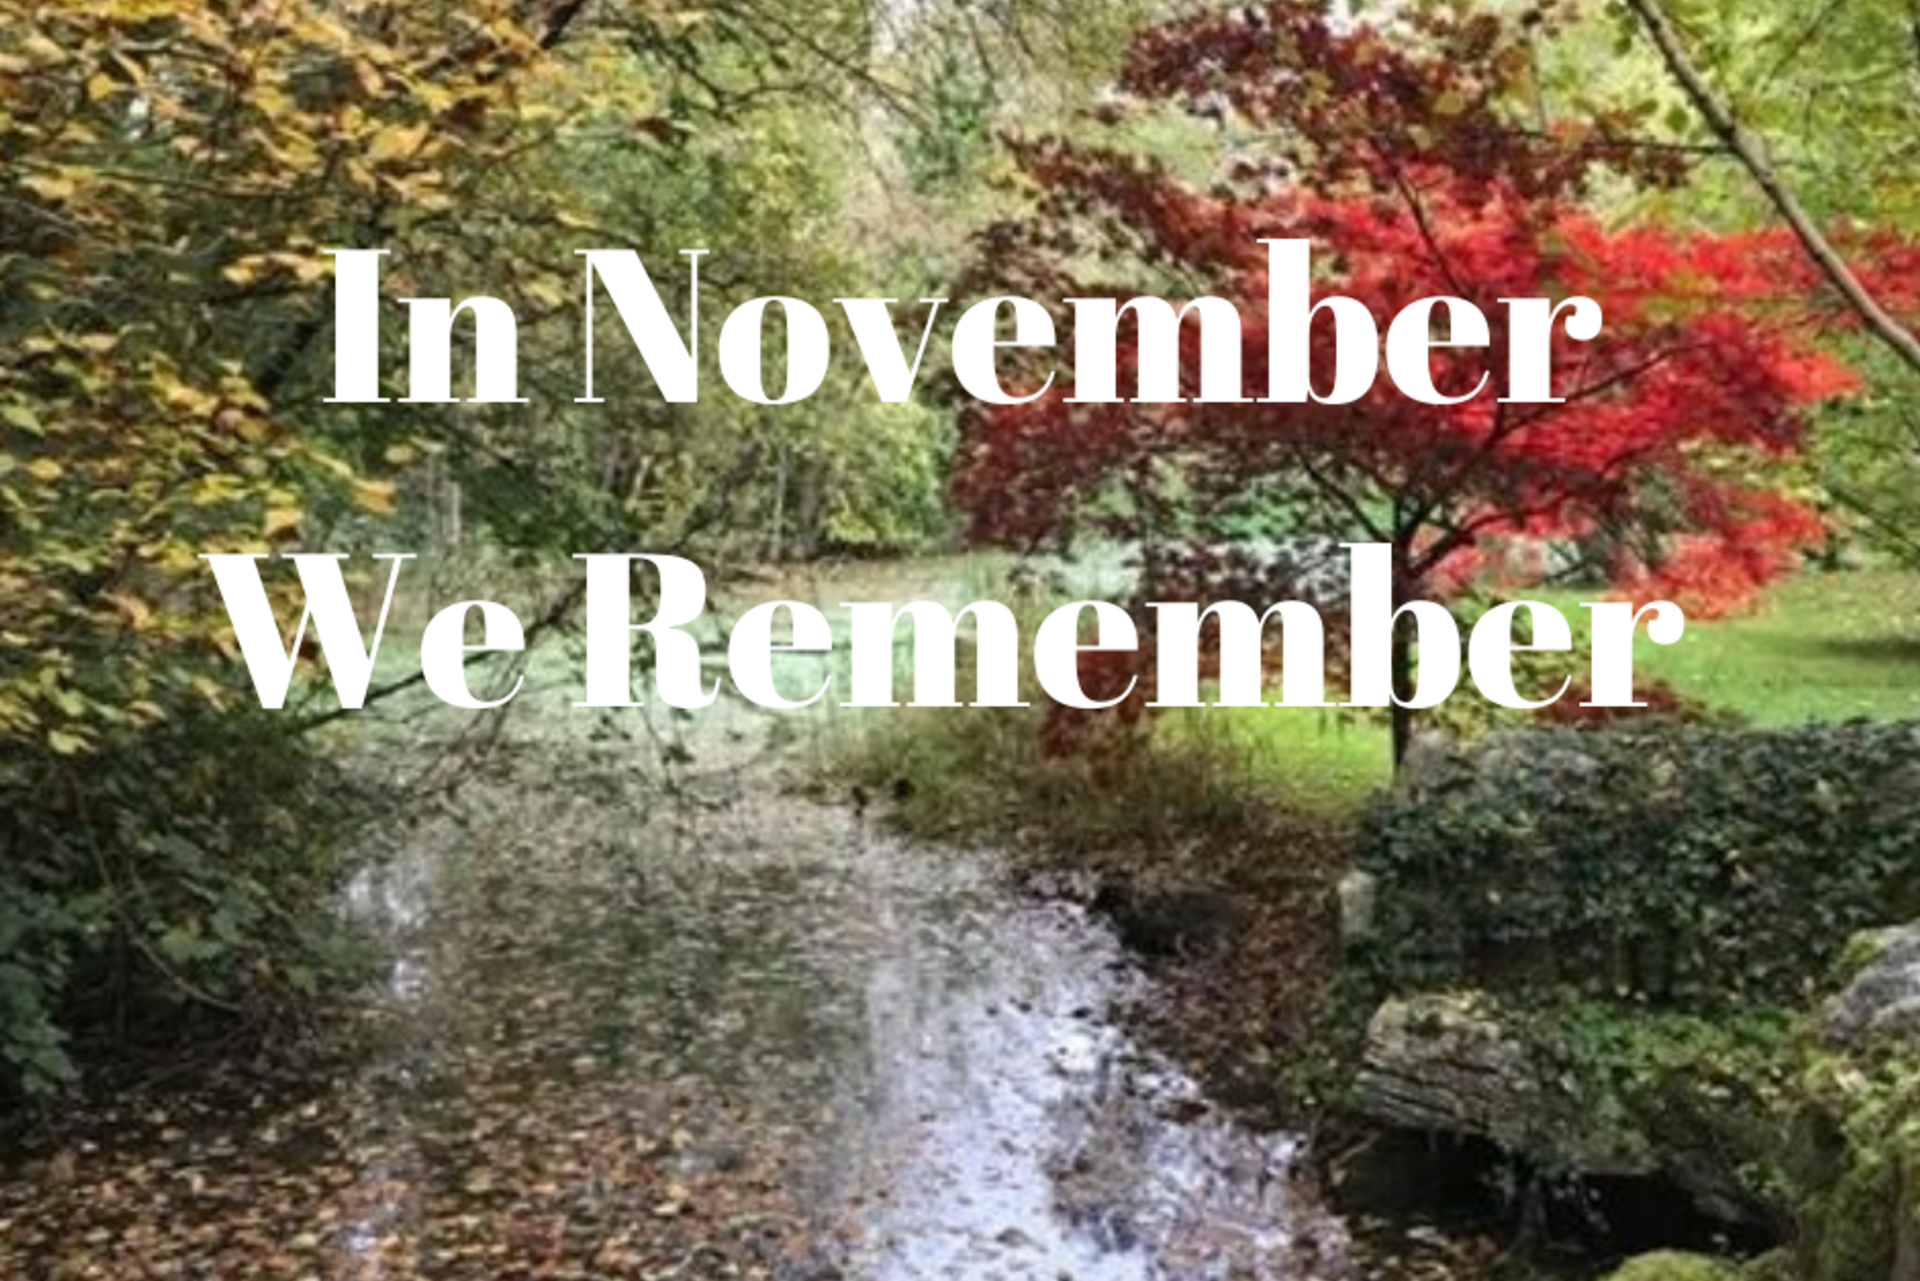 In November We Remember